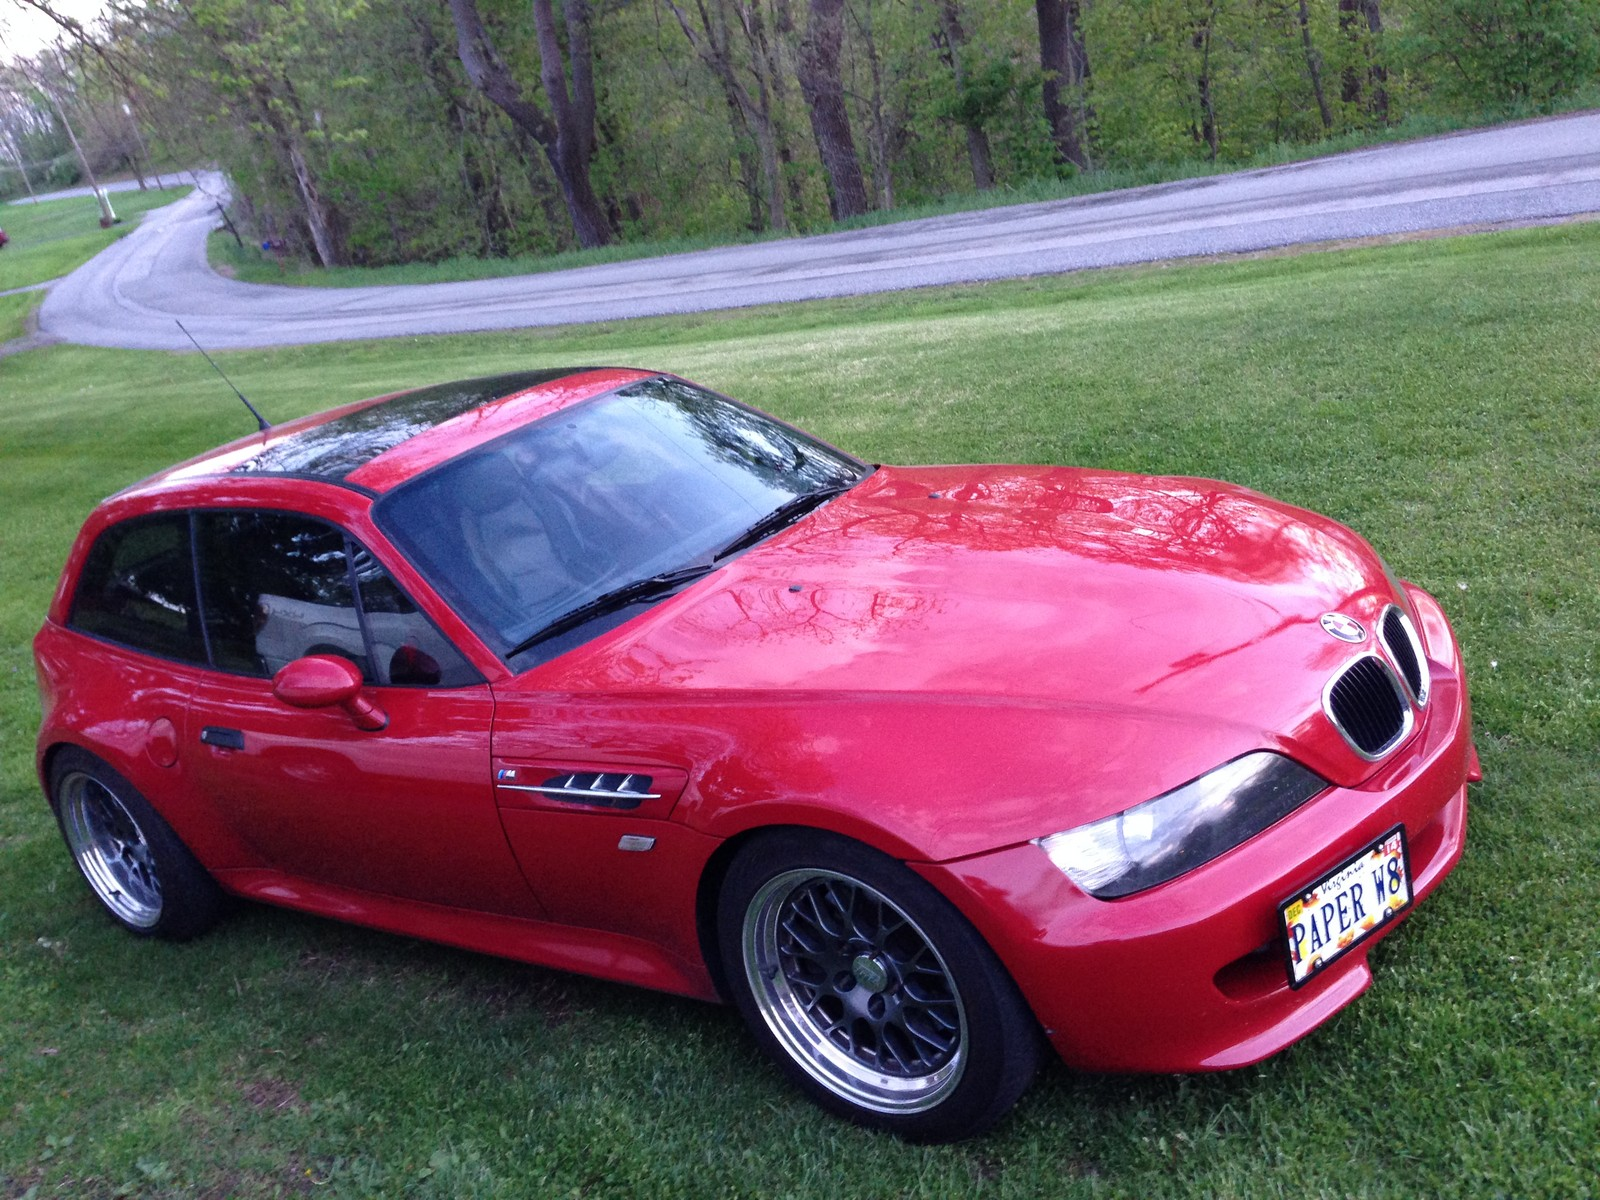 1999 BMW M Coupe 1/4 mile Drag Racing timeslip specs 0-60 ...